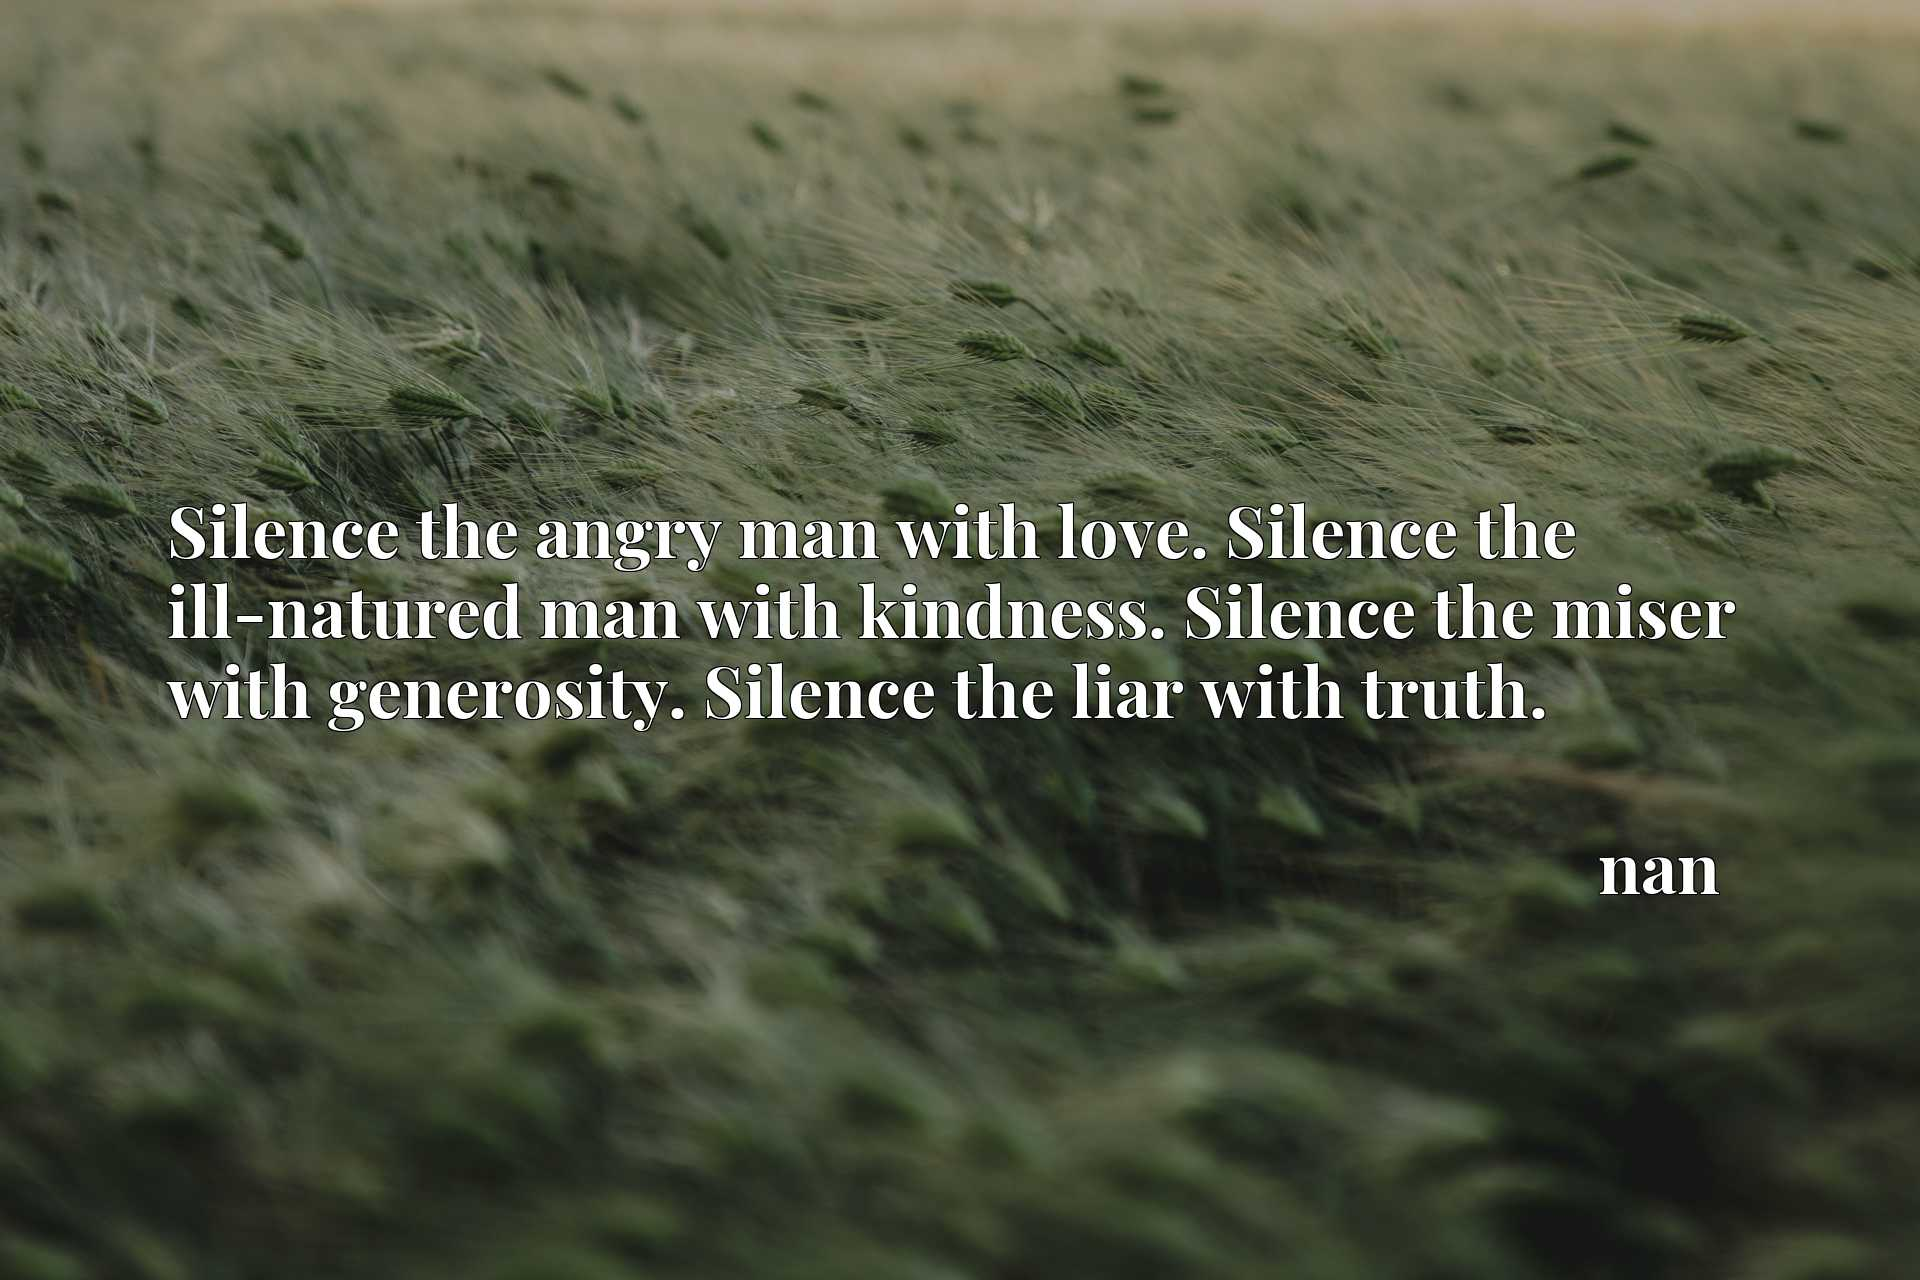 Silence the angry man with love. Silence the ill-natured man with kindness. Silence the miser with generosity. Silence the liar with truth.